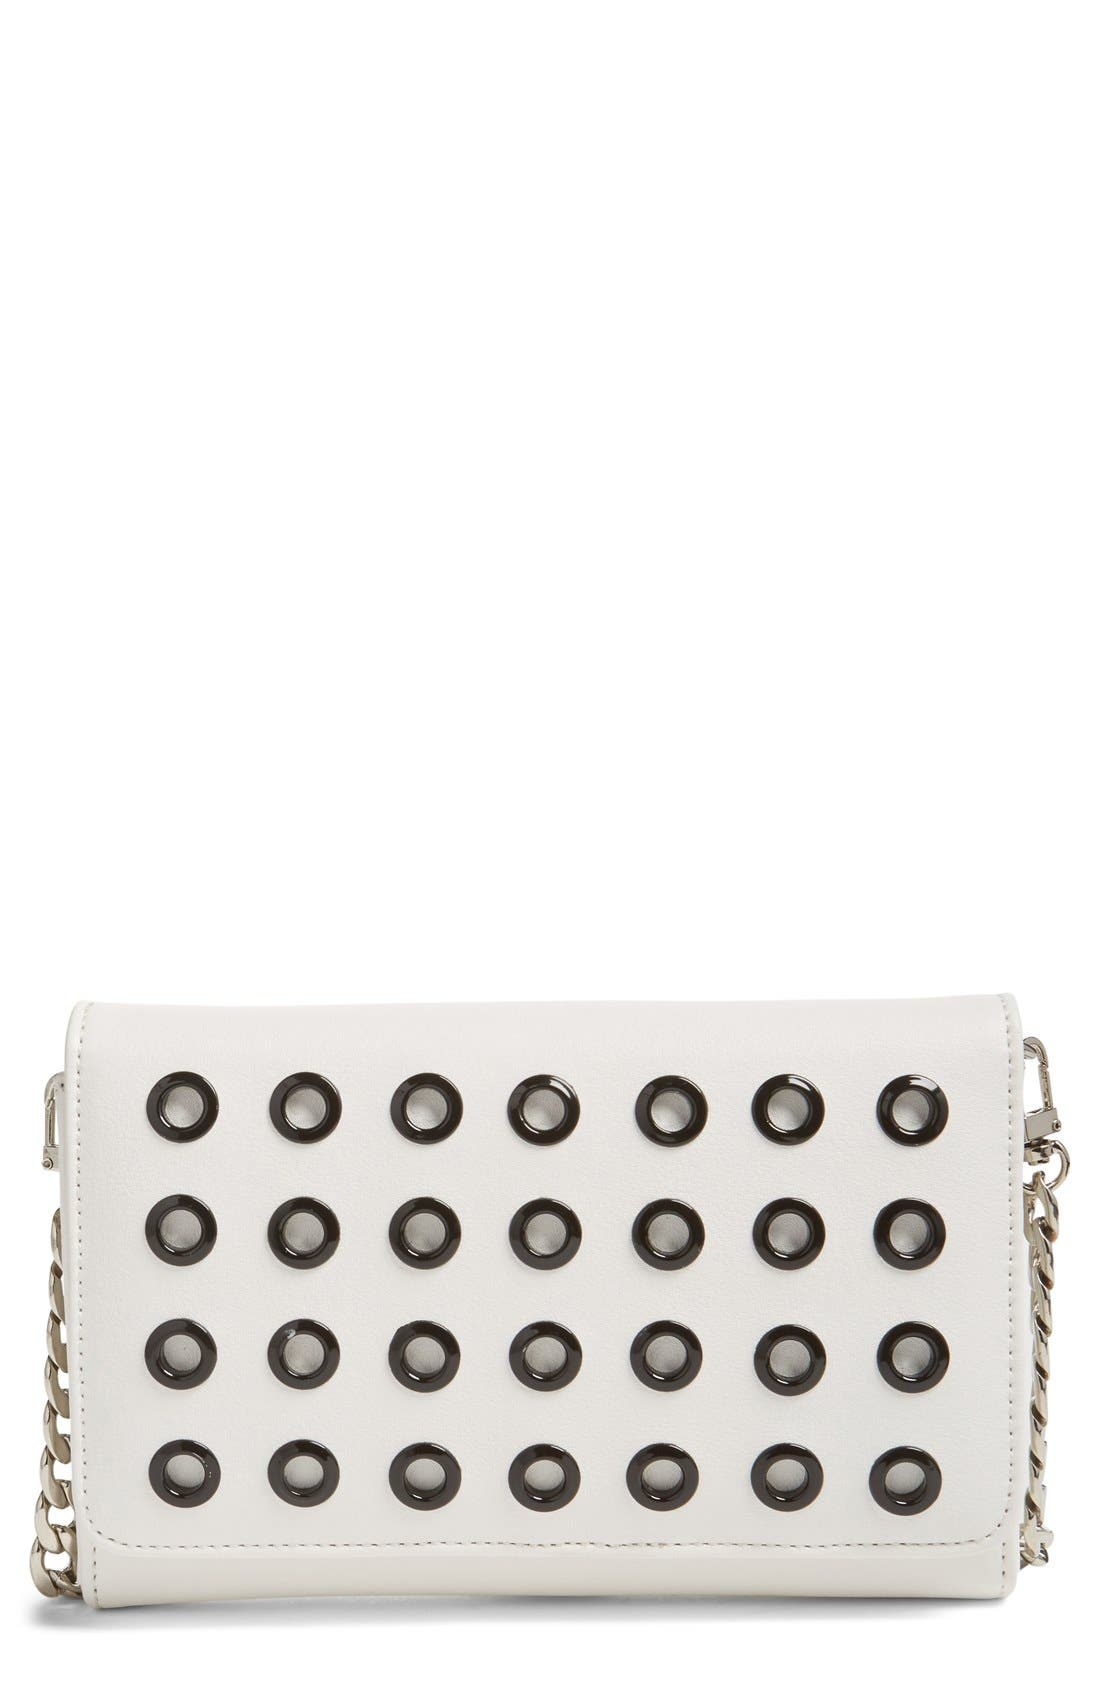 PHASE 3 Grommet Faux Leather Crossbody Bag